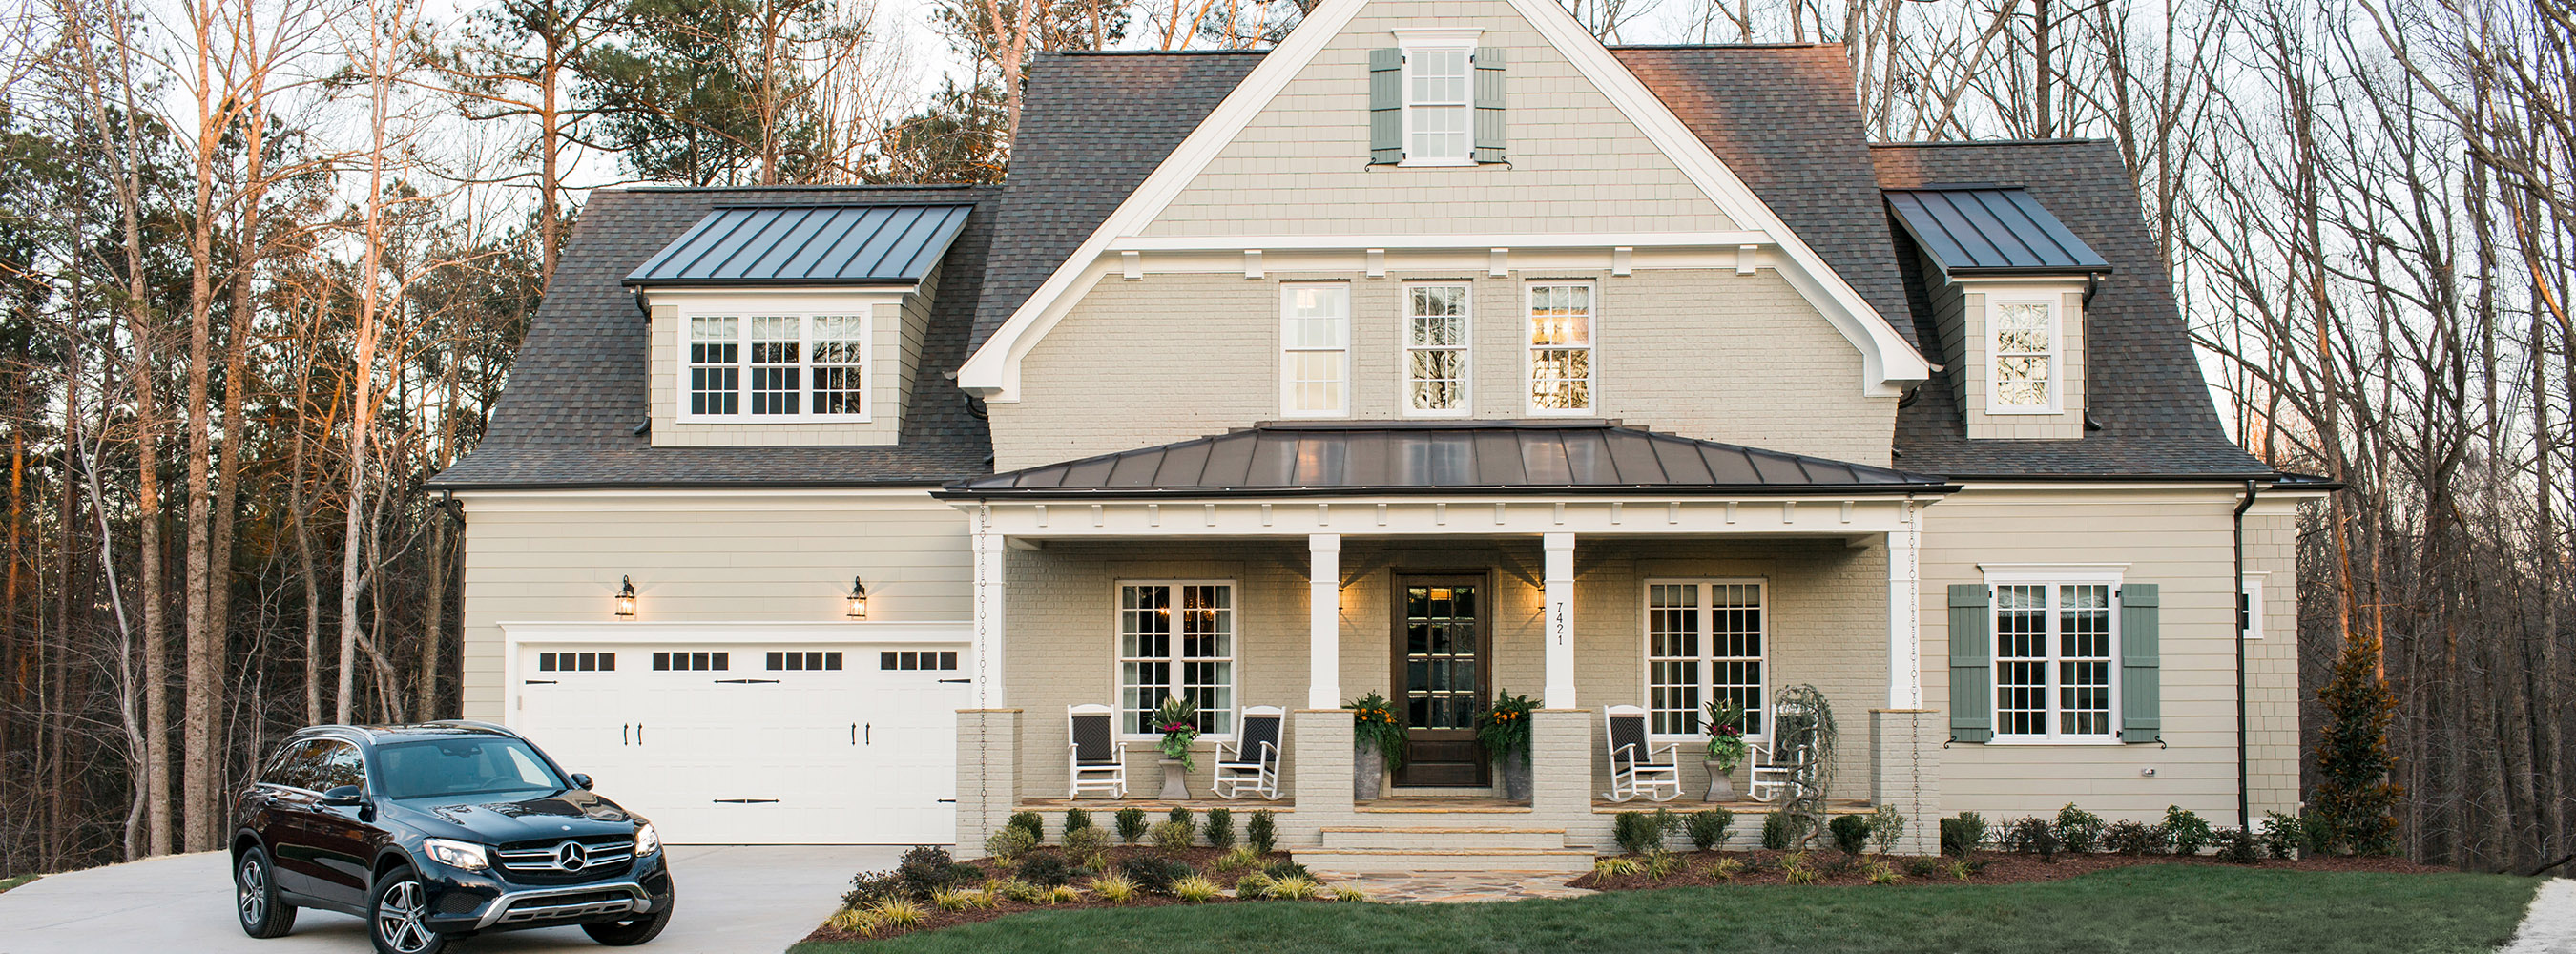 Swish Hgtv Home 2016 Null Hr Hgtv Home 2018 Sweepstakes Winner Hgtv Home 2017 Winner Hgtv Launches Virtual Tour curbed Hgtv Smart Home